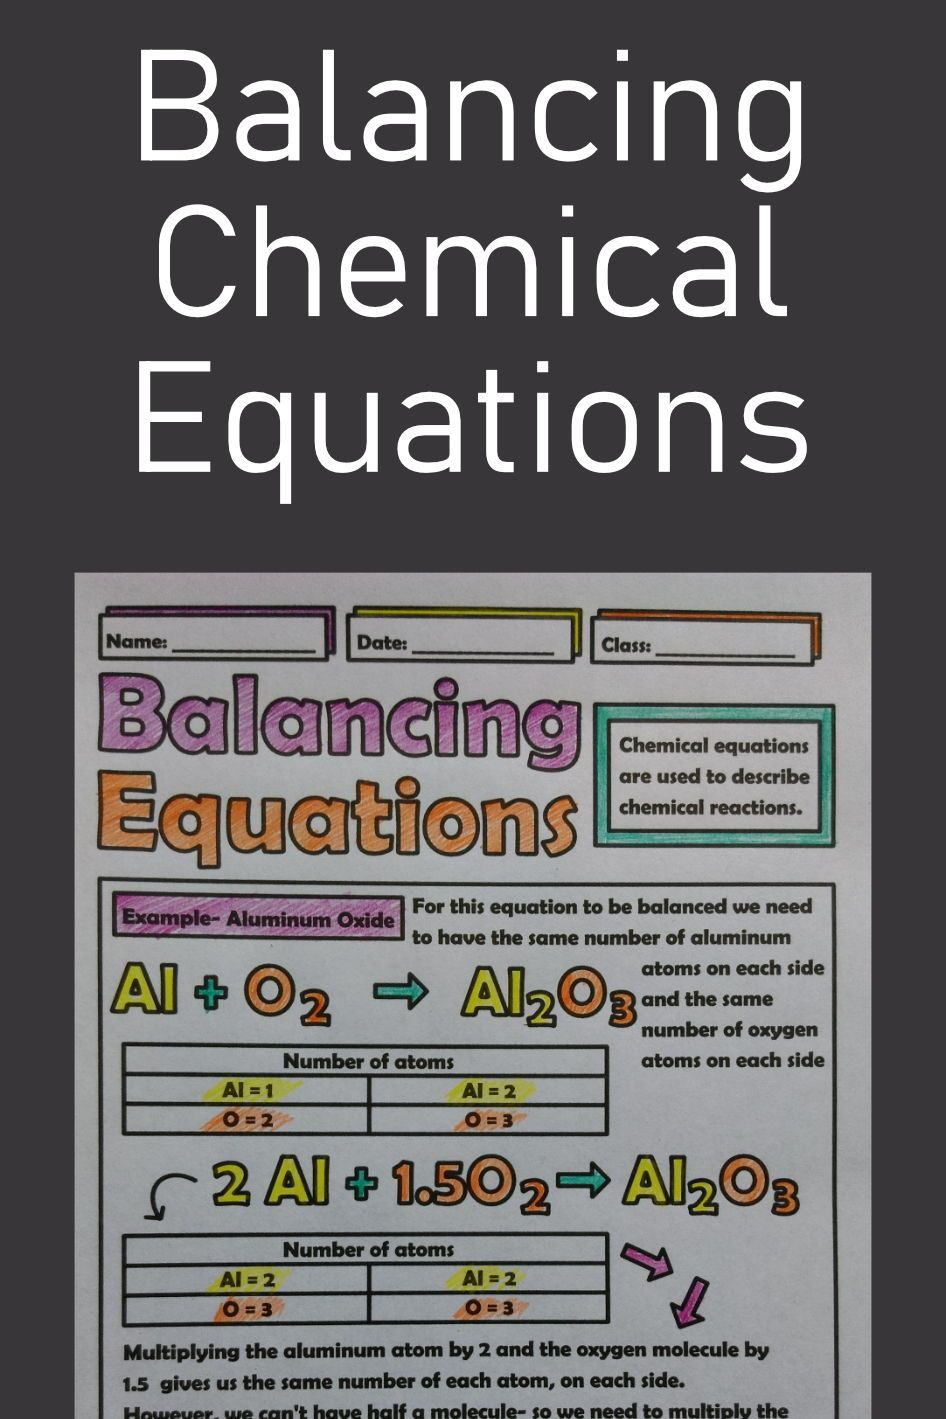 Balancing Chemical Equations Doodle Sheet Middle School